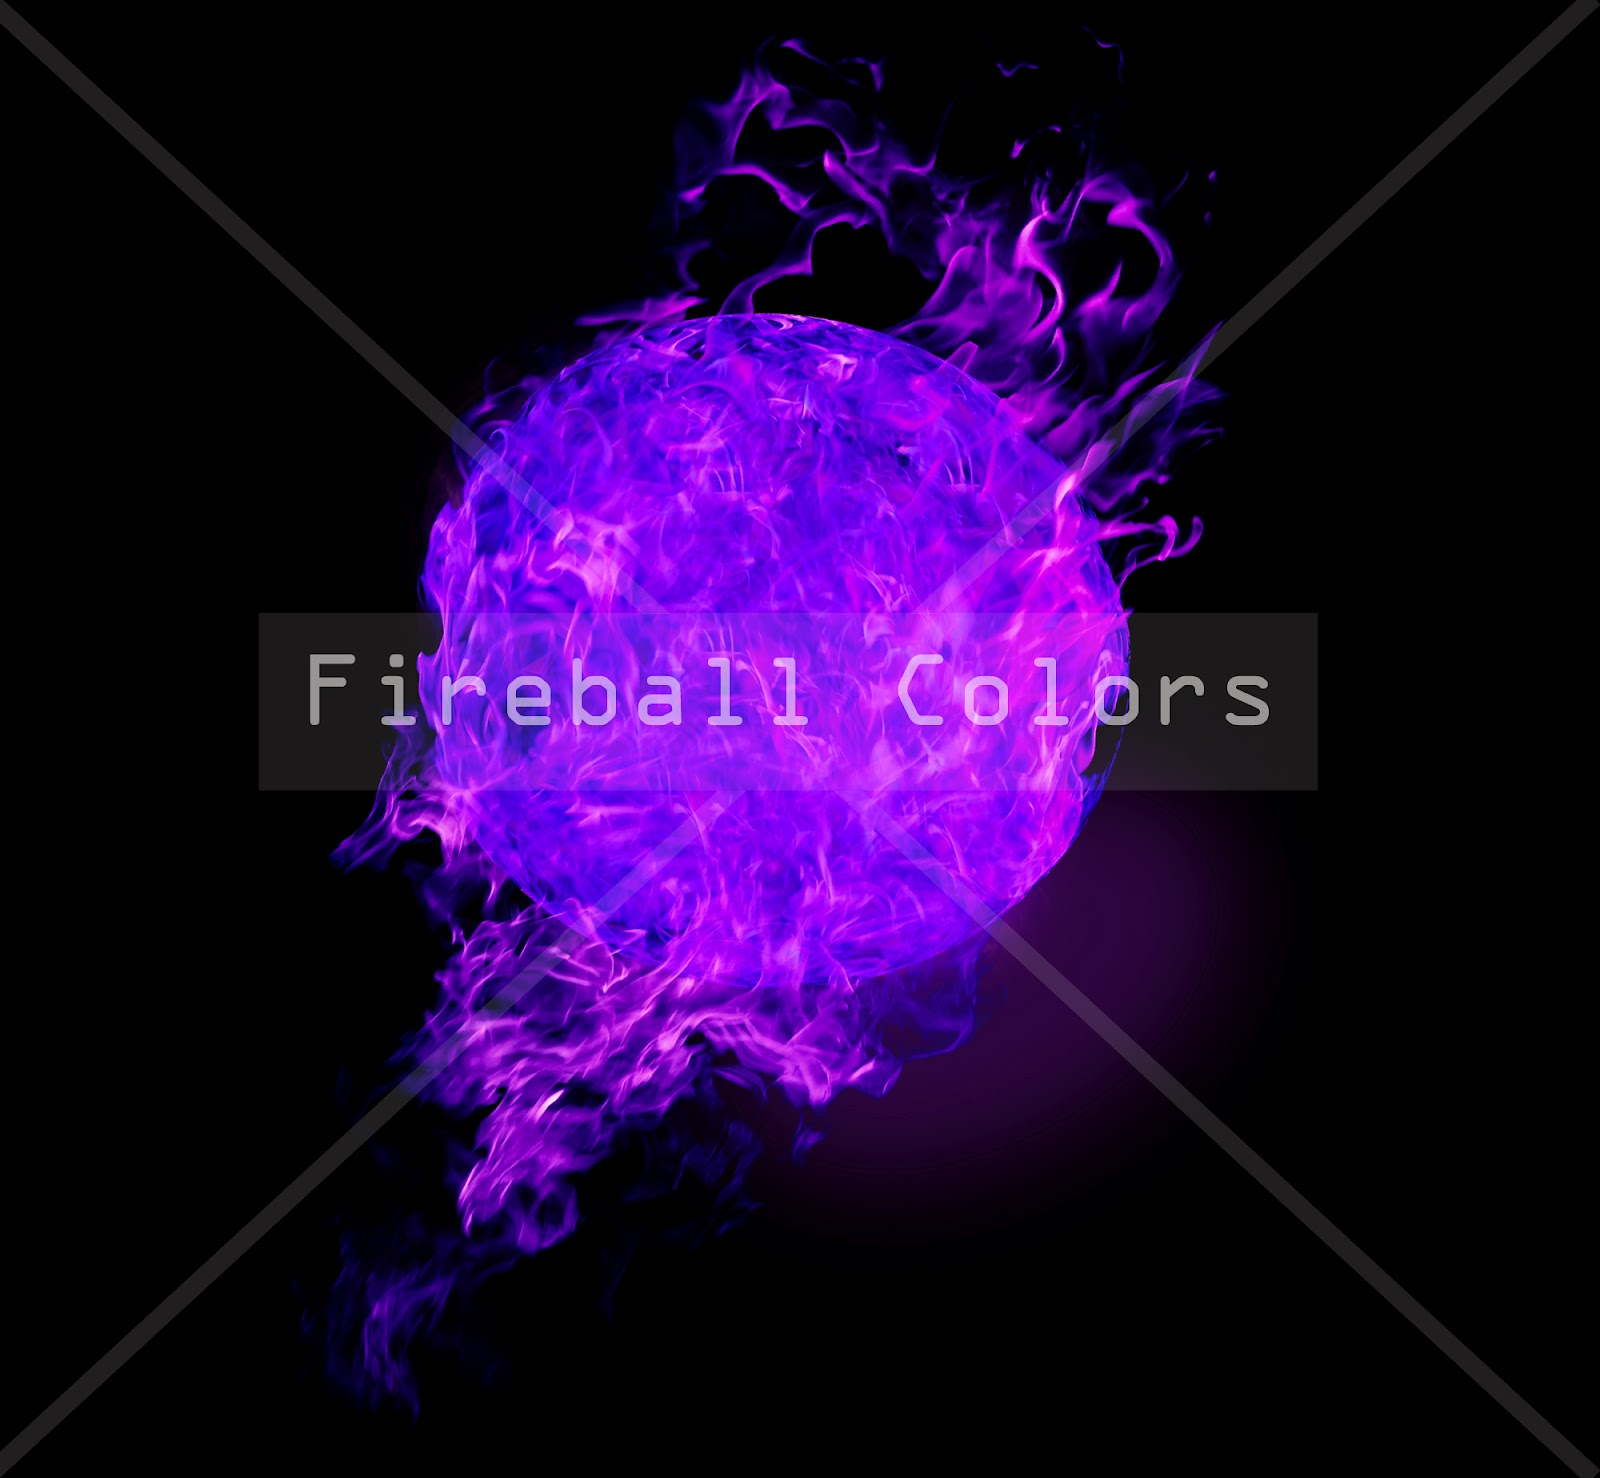 Download Adobe Photoshop Fireball Colors Fireball Colors Vector